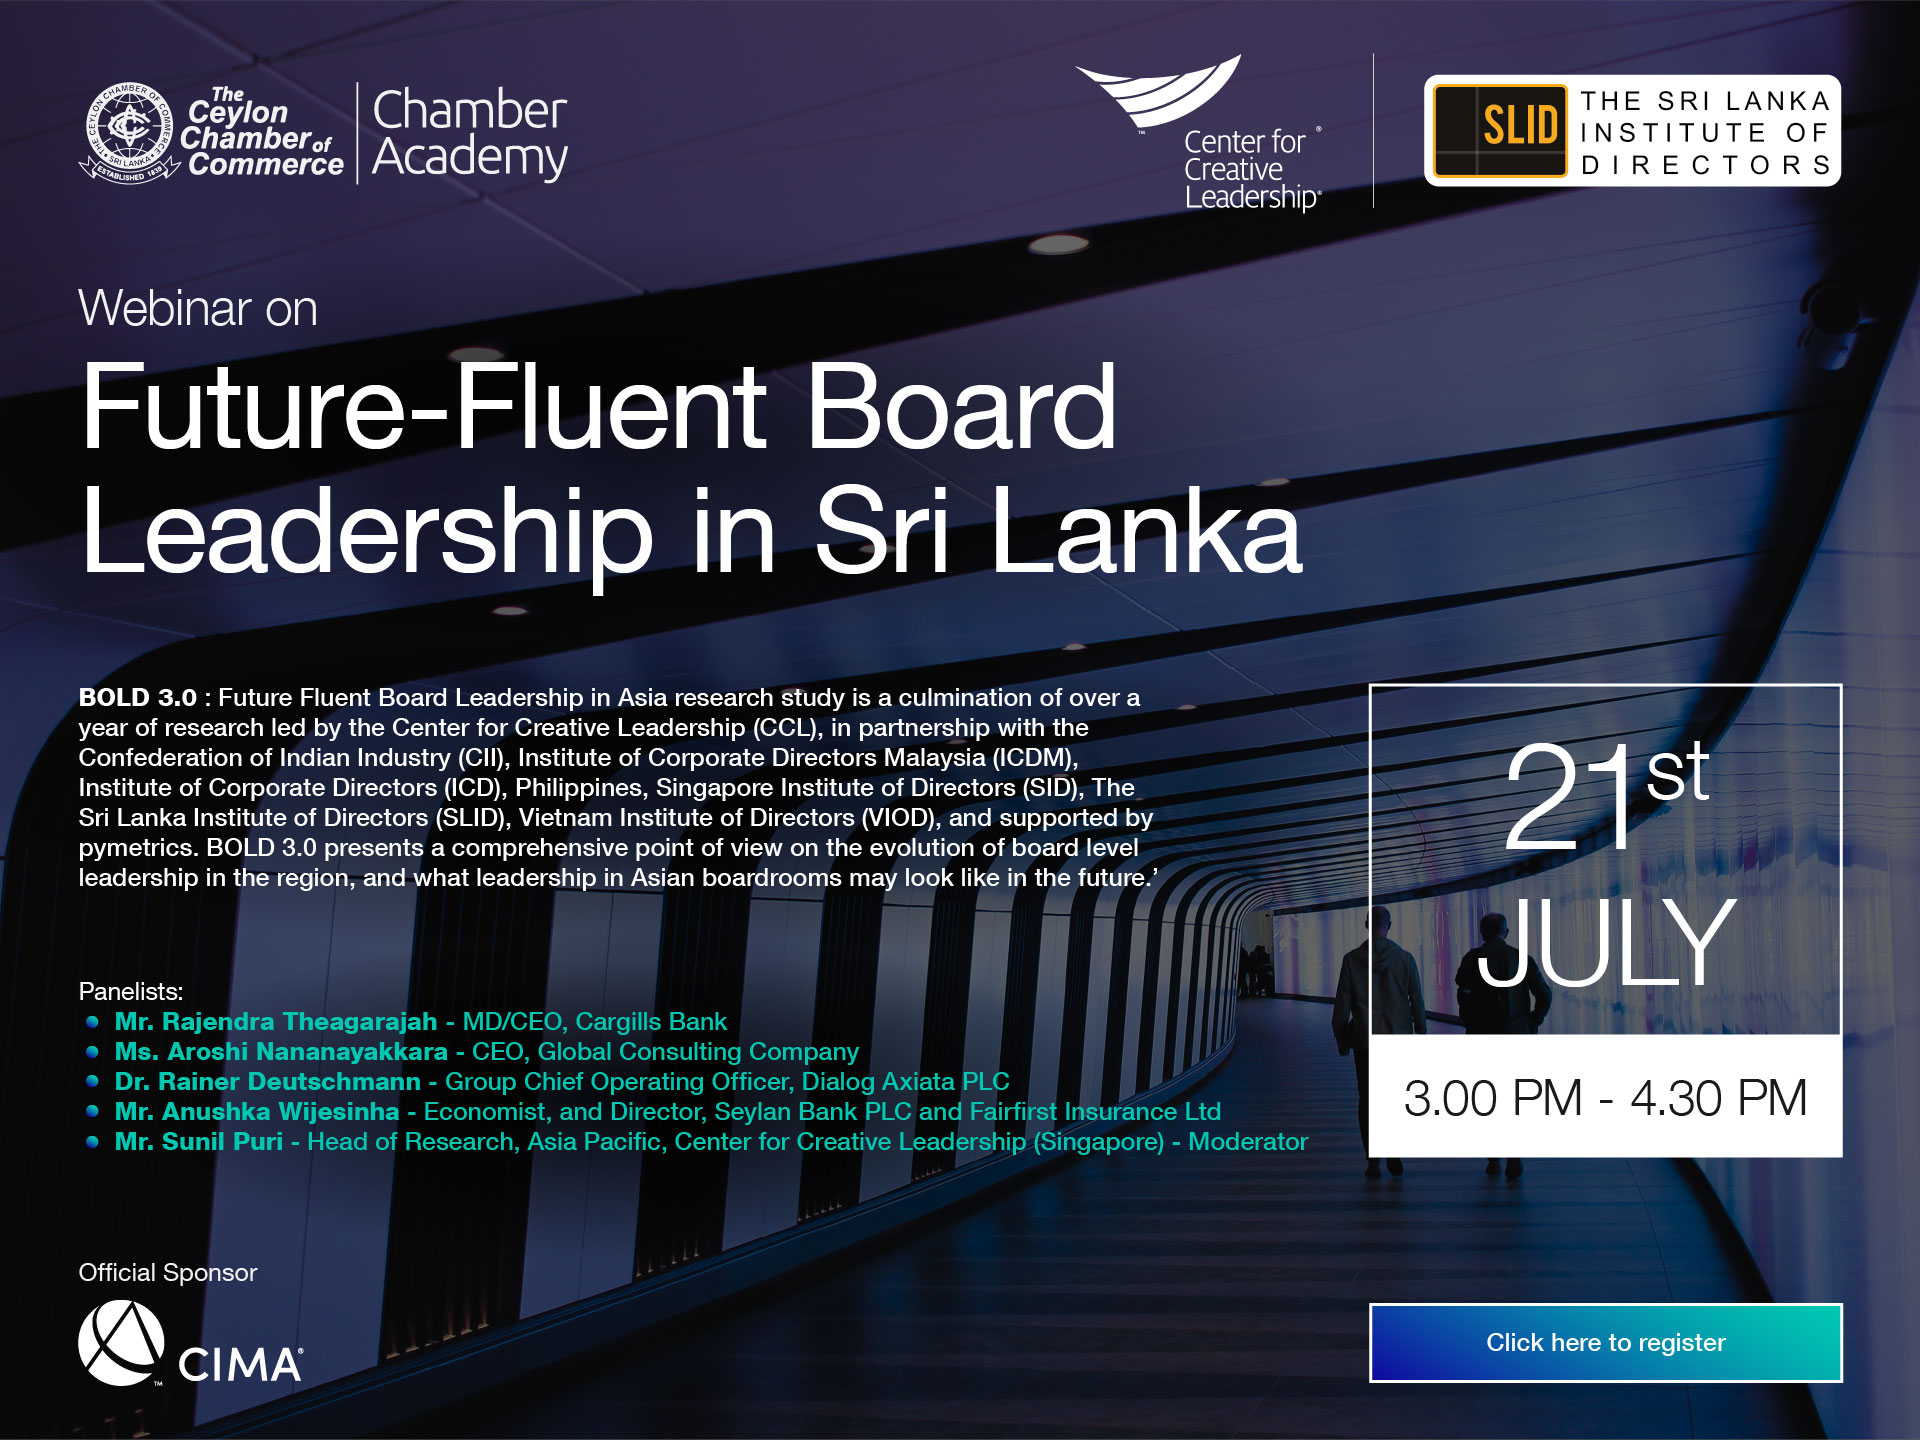 FUTURE-FLUENT BOARD LEADERSHIP IN SRI LANKA